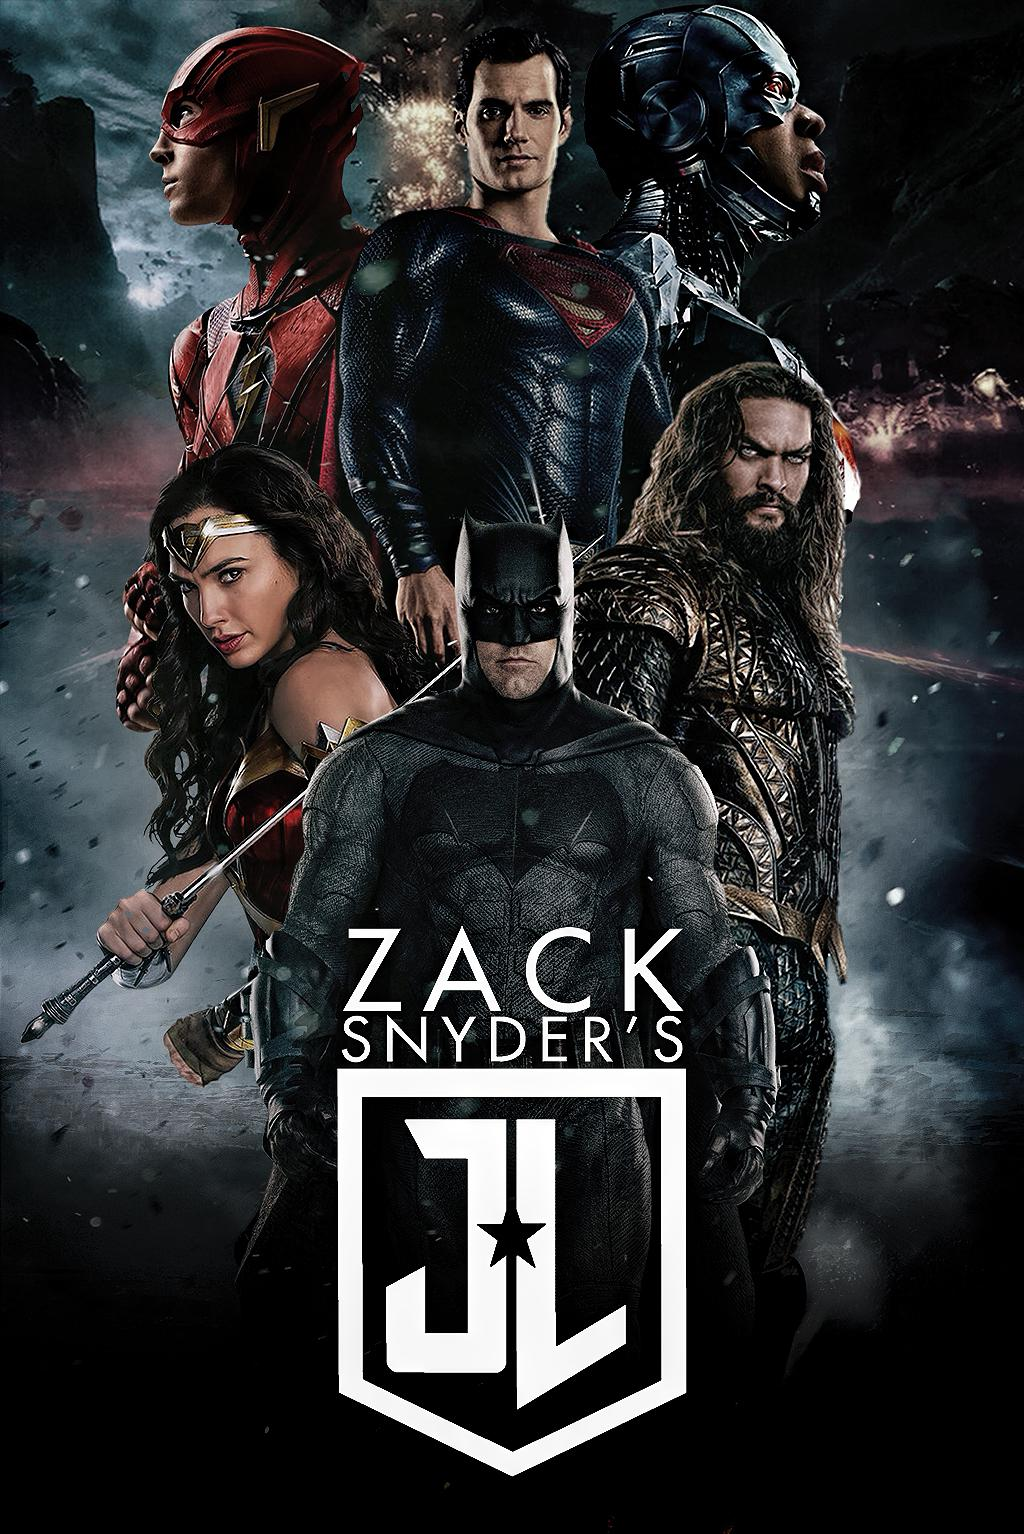 Zack Snyder's Justice League 2021 English Full Movie Download